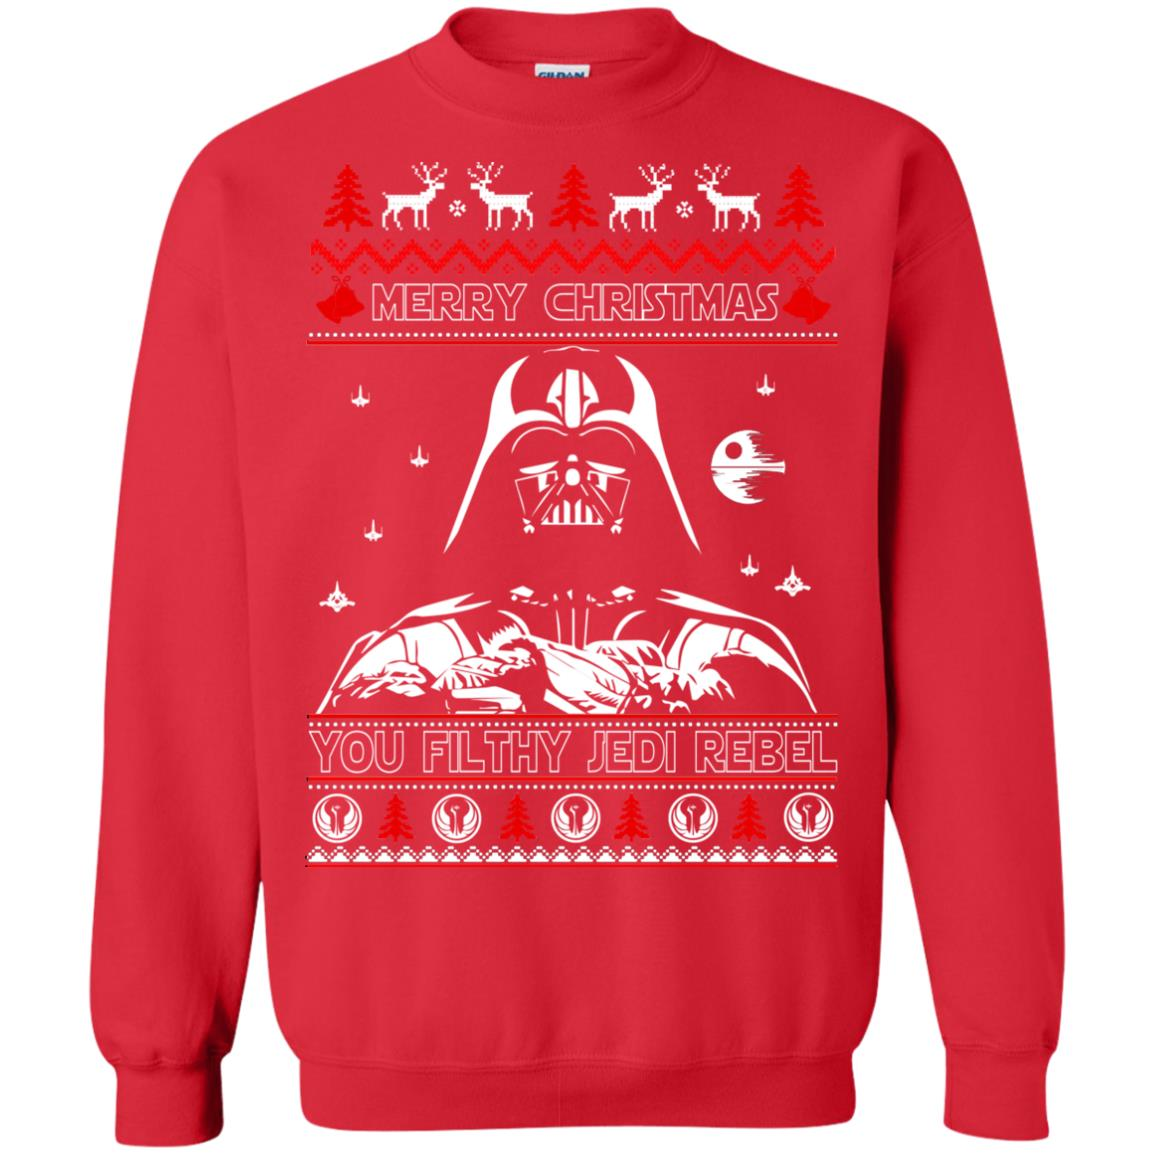 image 1790 - Darth Vader Merry Christmas You Filthy Jedi Rebel Ugly Sweater, Shirt